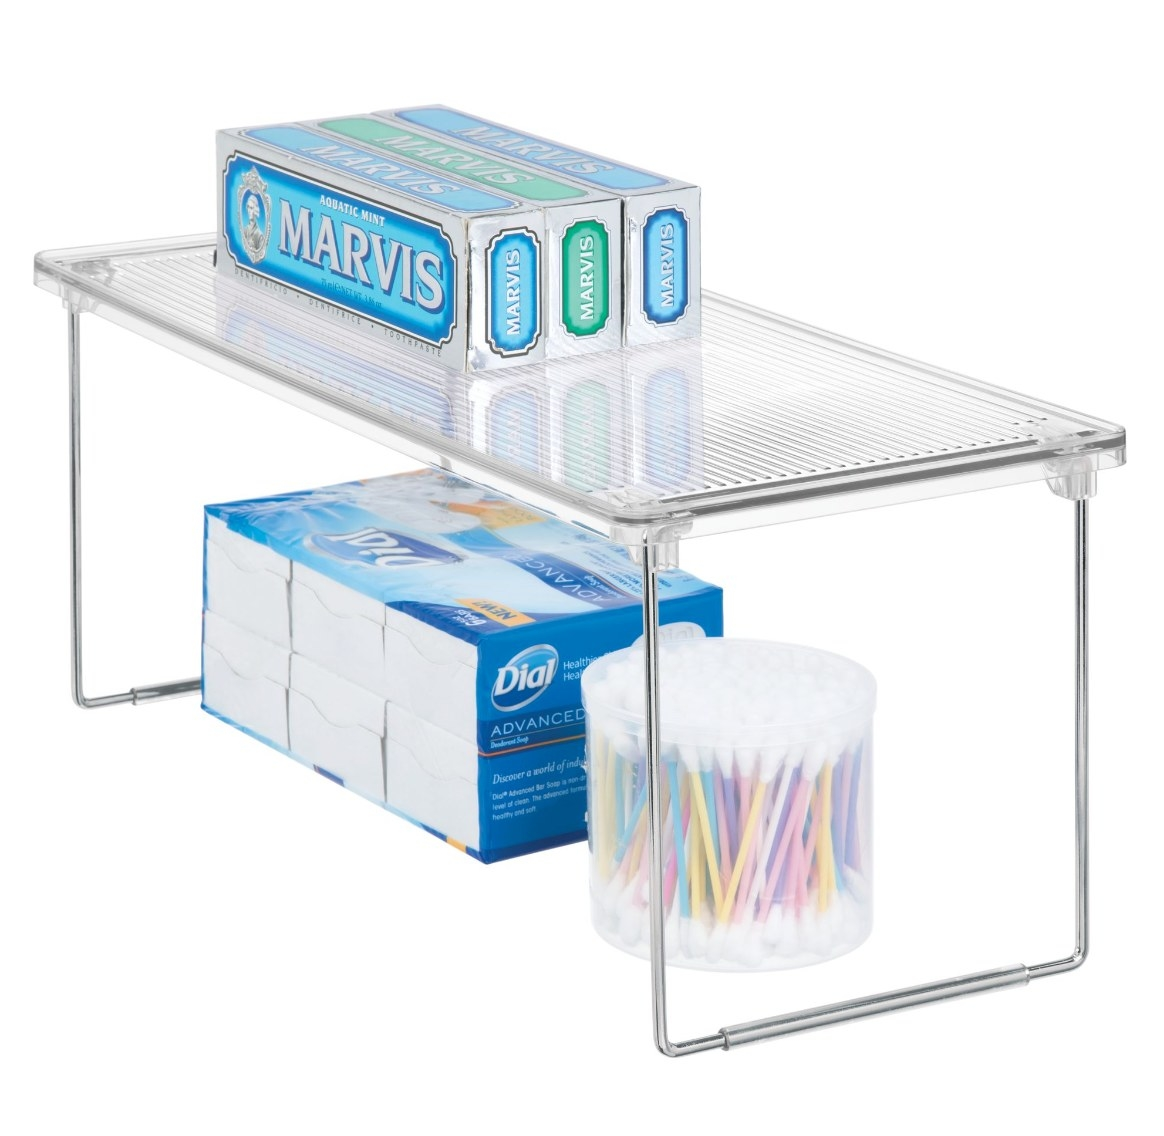 The stacking storage shelf in clear with metal legs